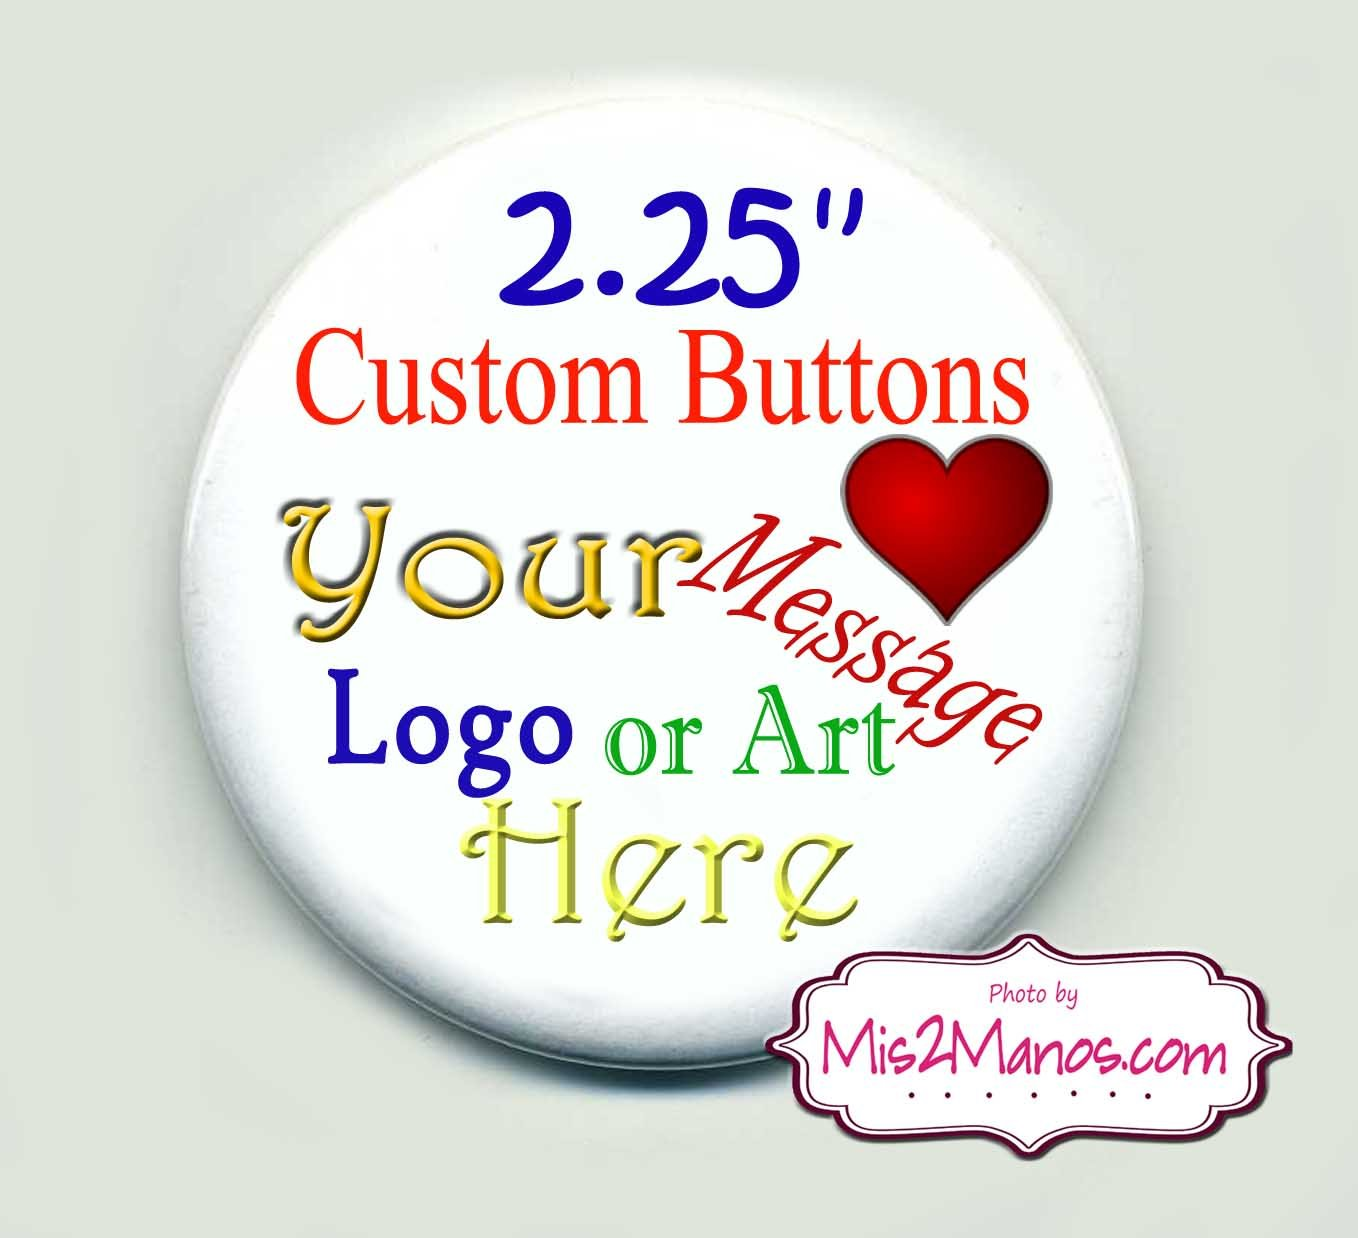 Custom Buttons Personalized Buttons Pin Back Promotional Buttons Set of 10